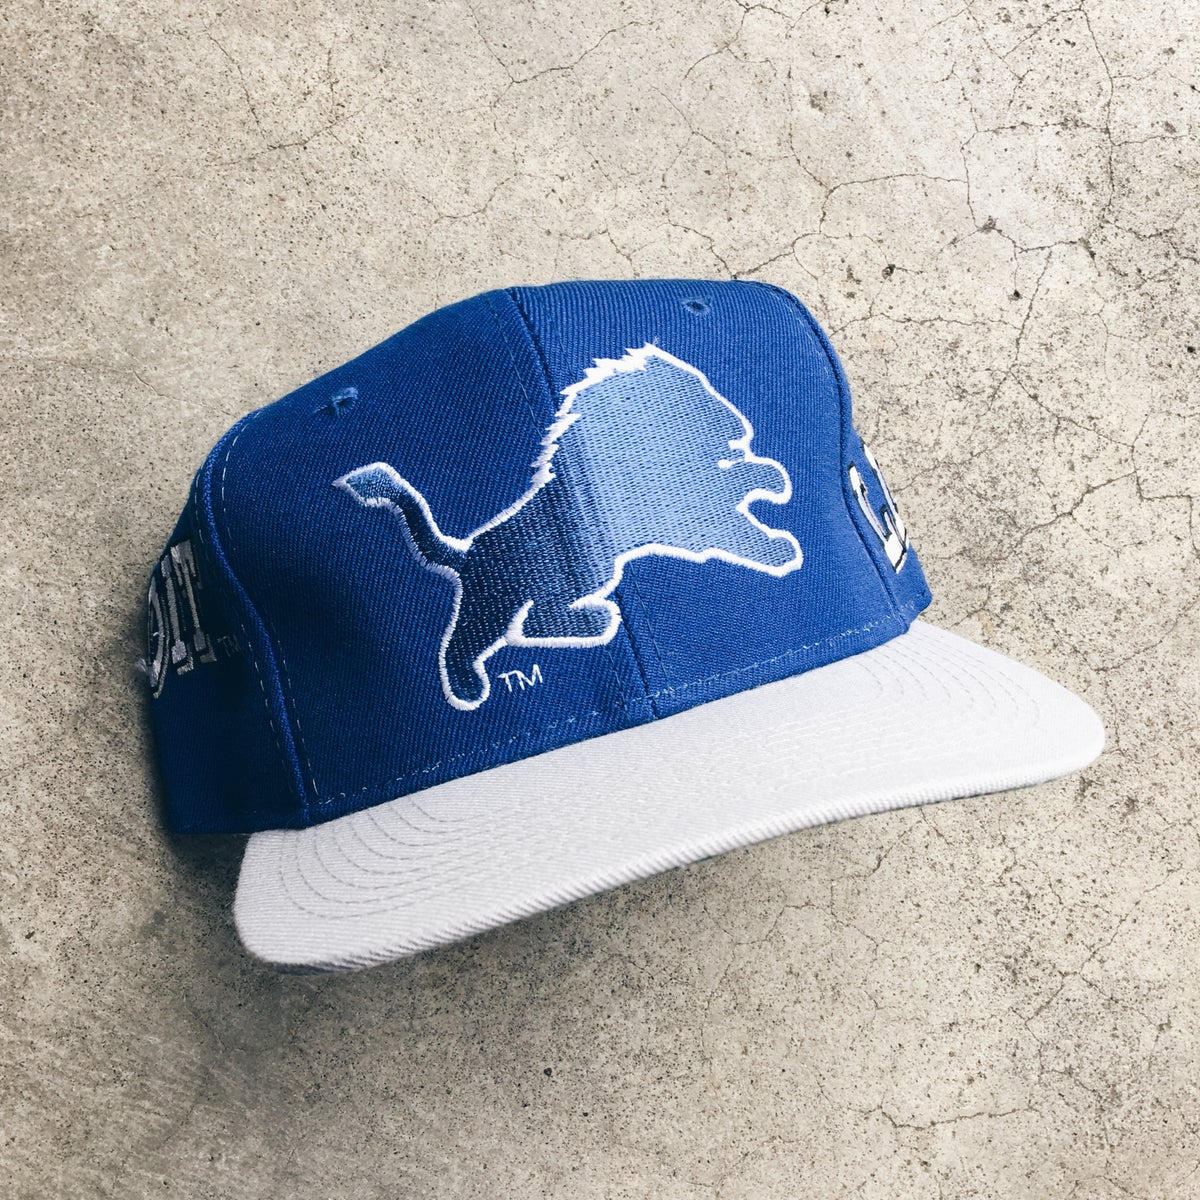 Image of Original 90's Pro Line Sports Specialties Lions Snapback Hat.